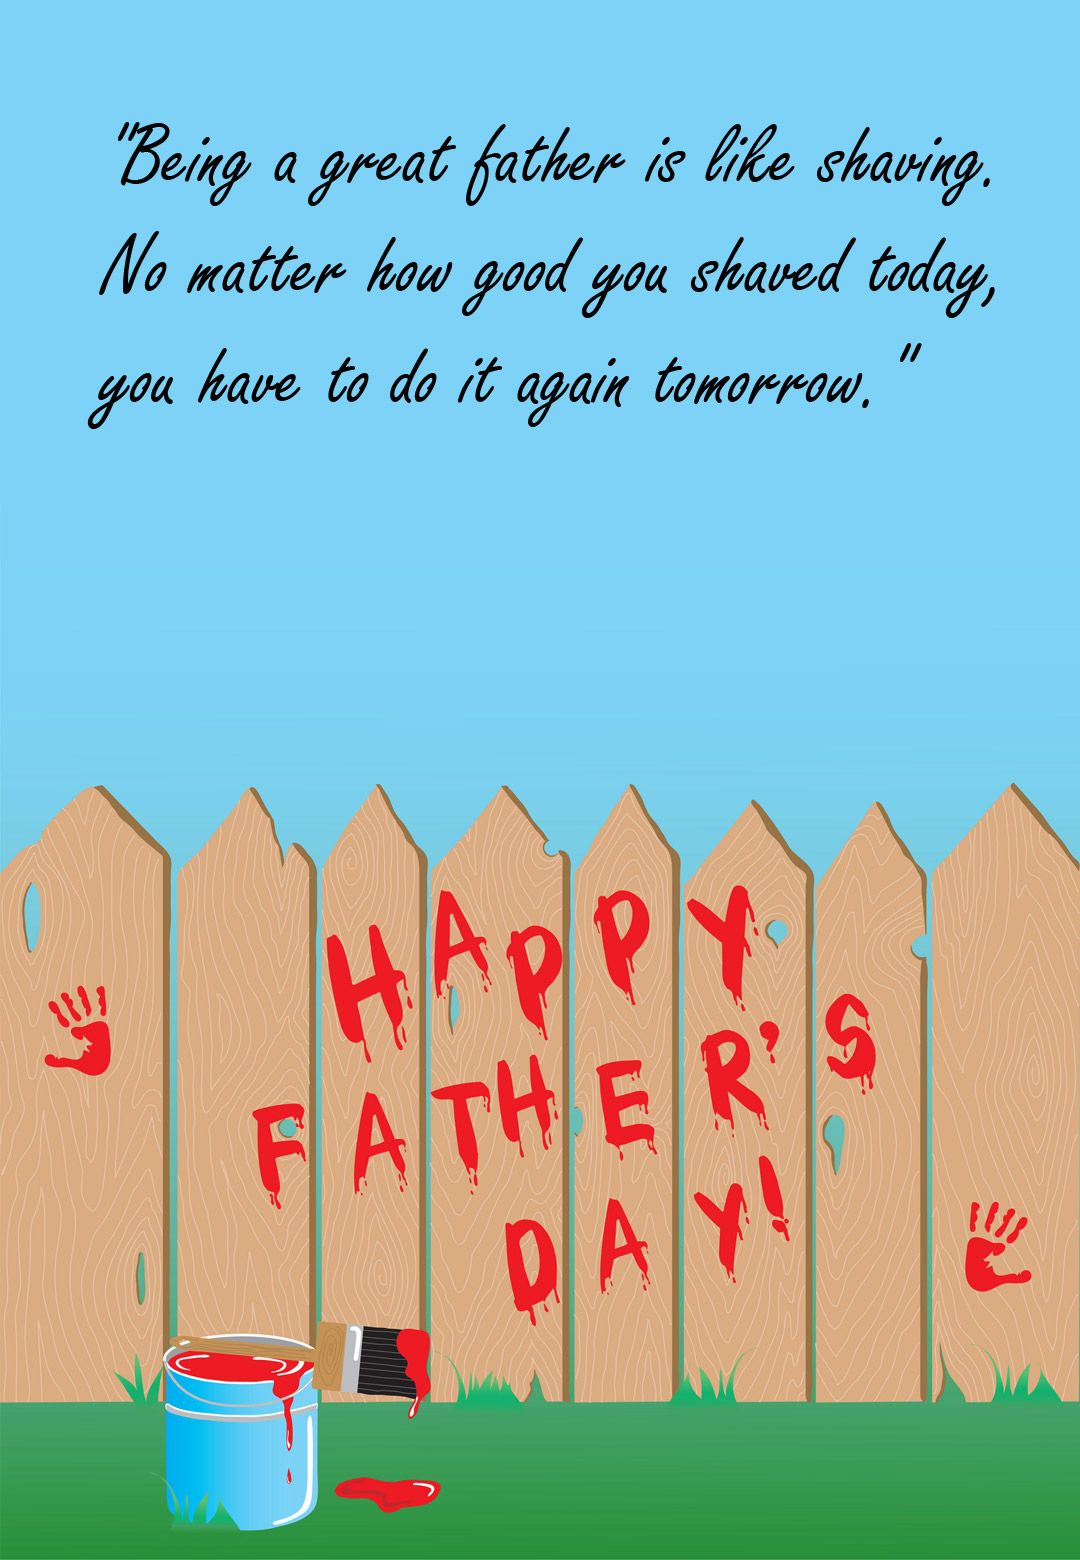 Free Printable Being A Great Father Greeting Card Free Printable